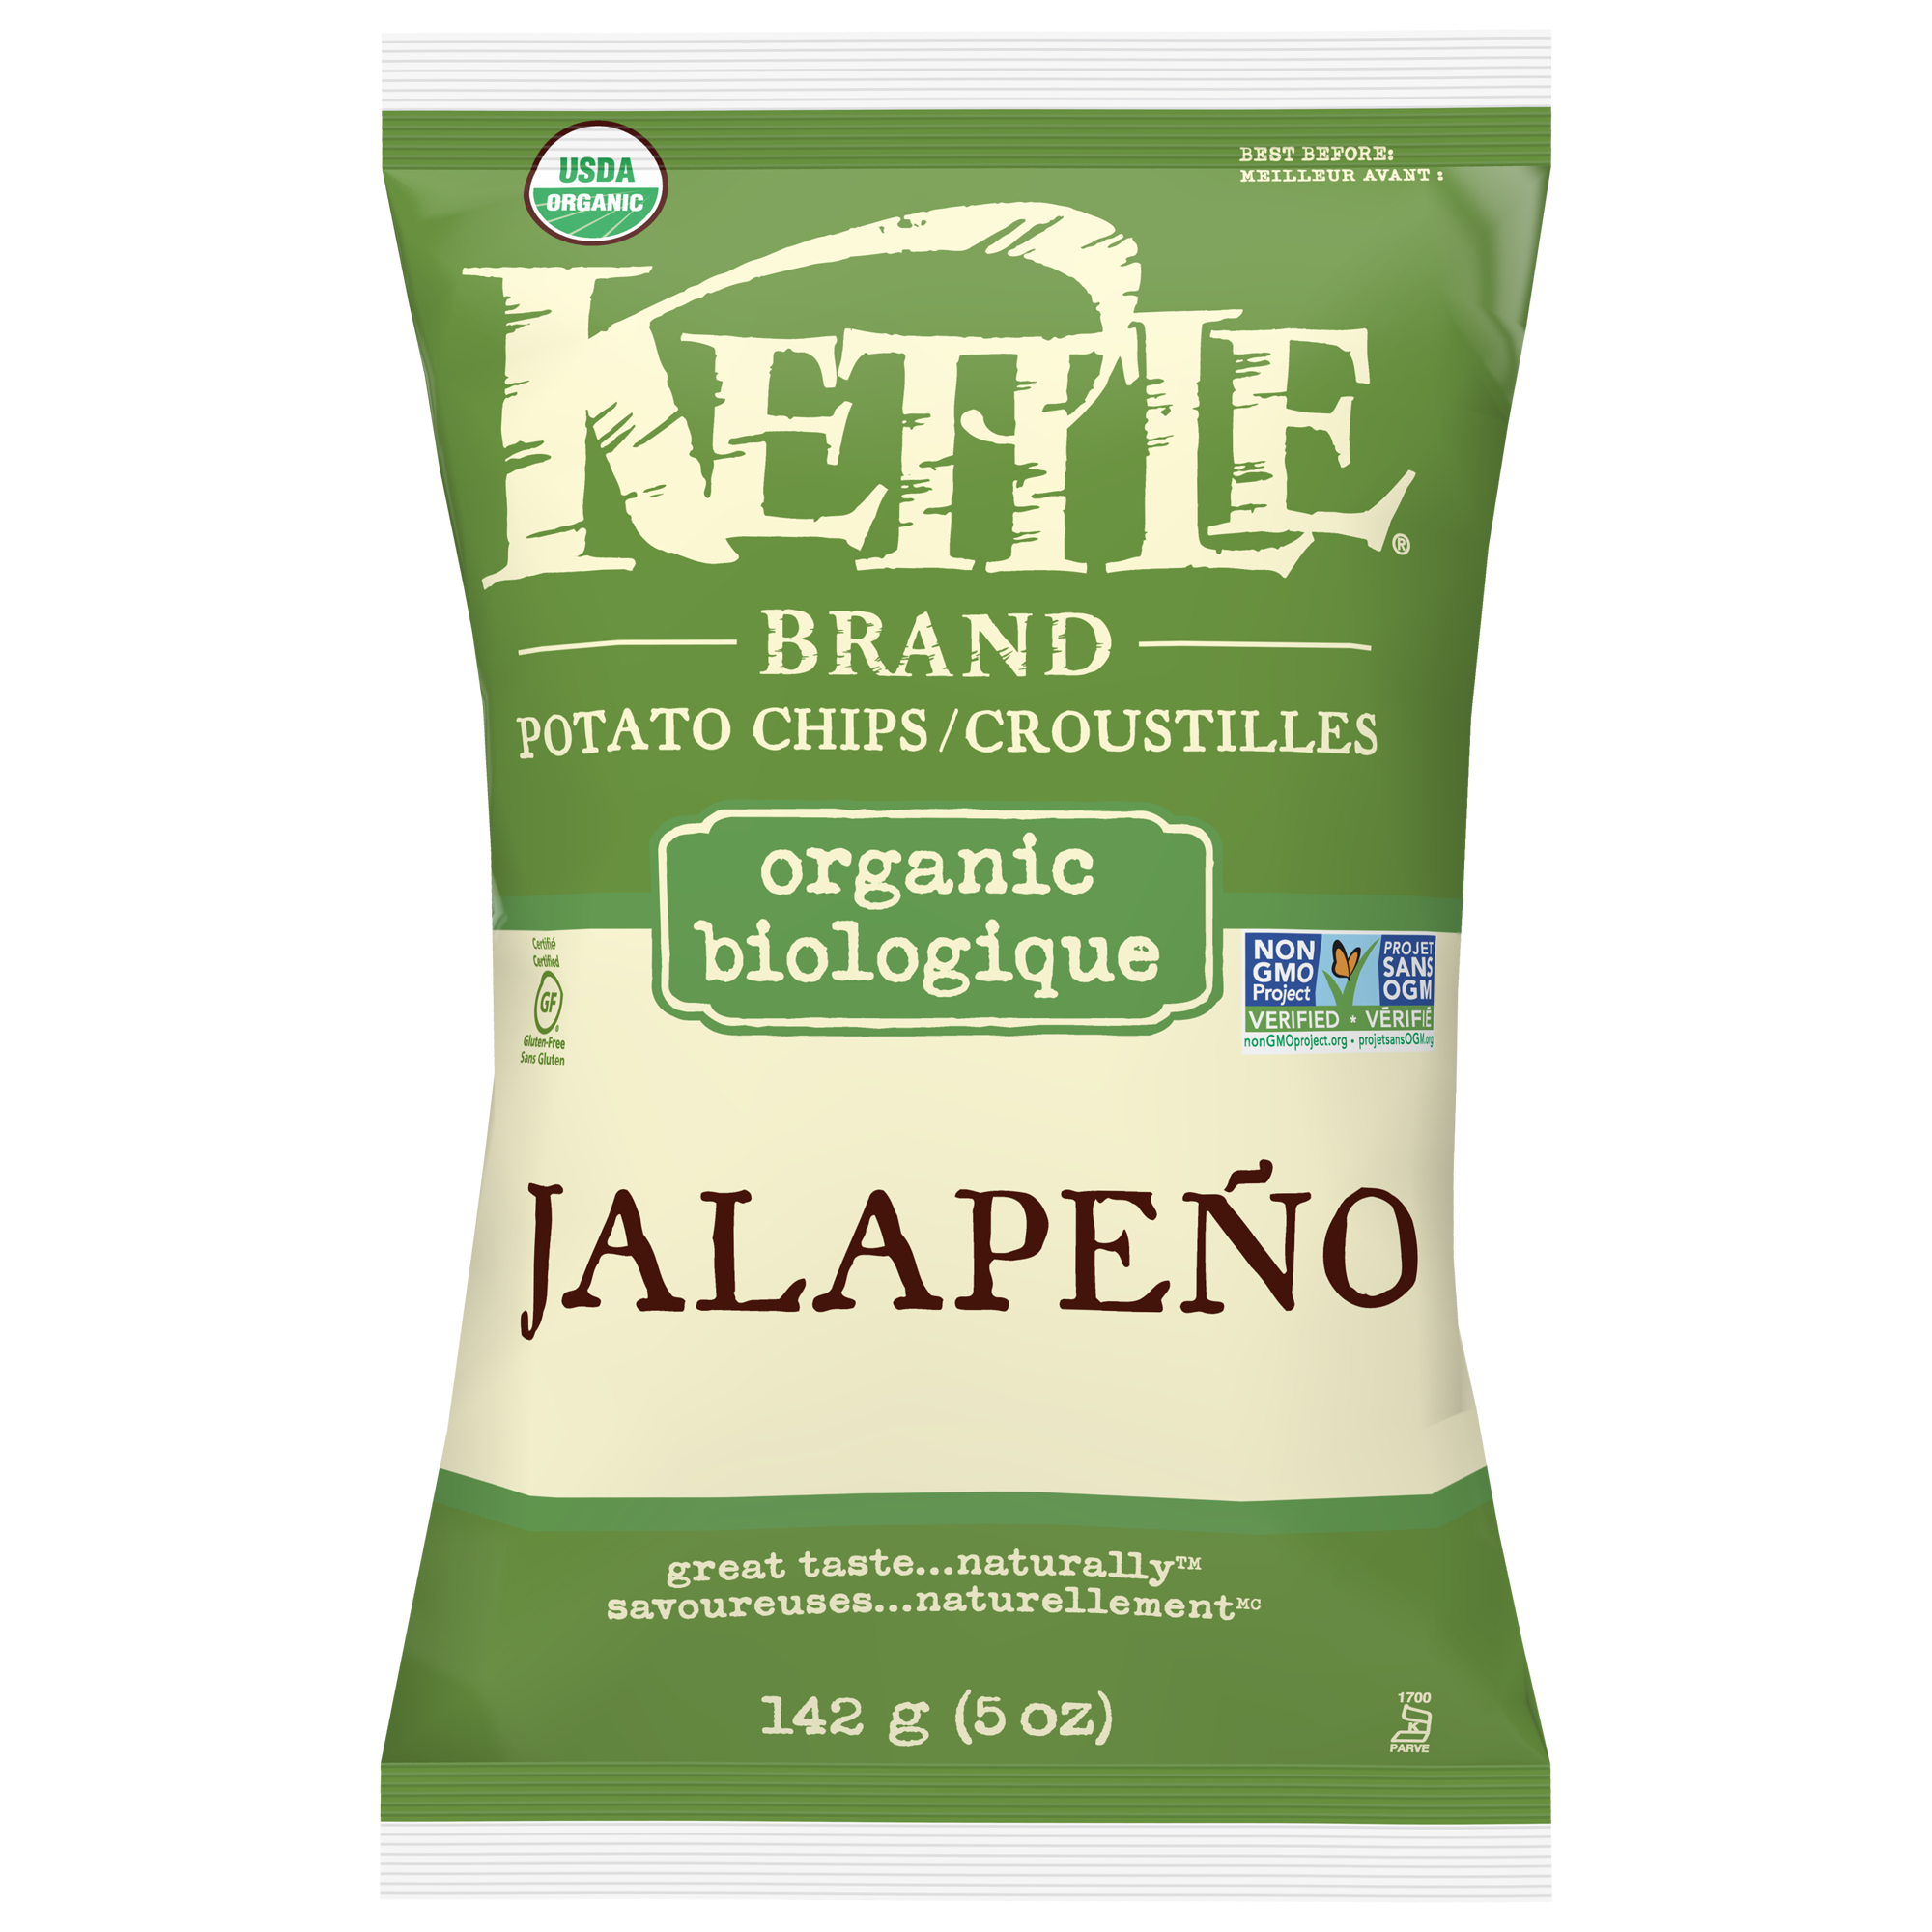 Jalapeño Organic Potato Chips by Kettle Brand 142g